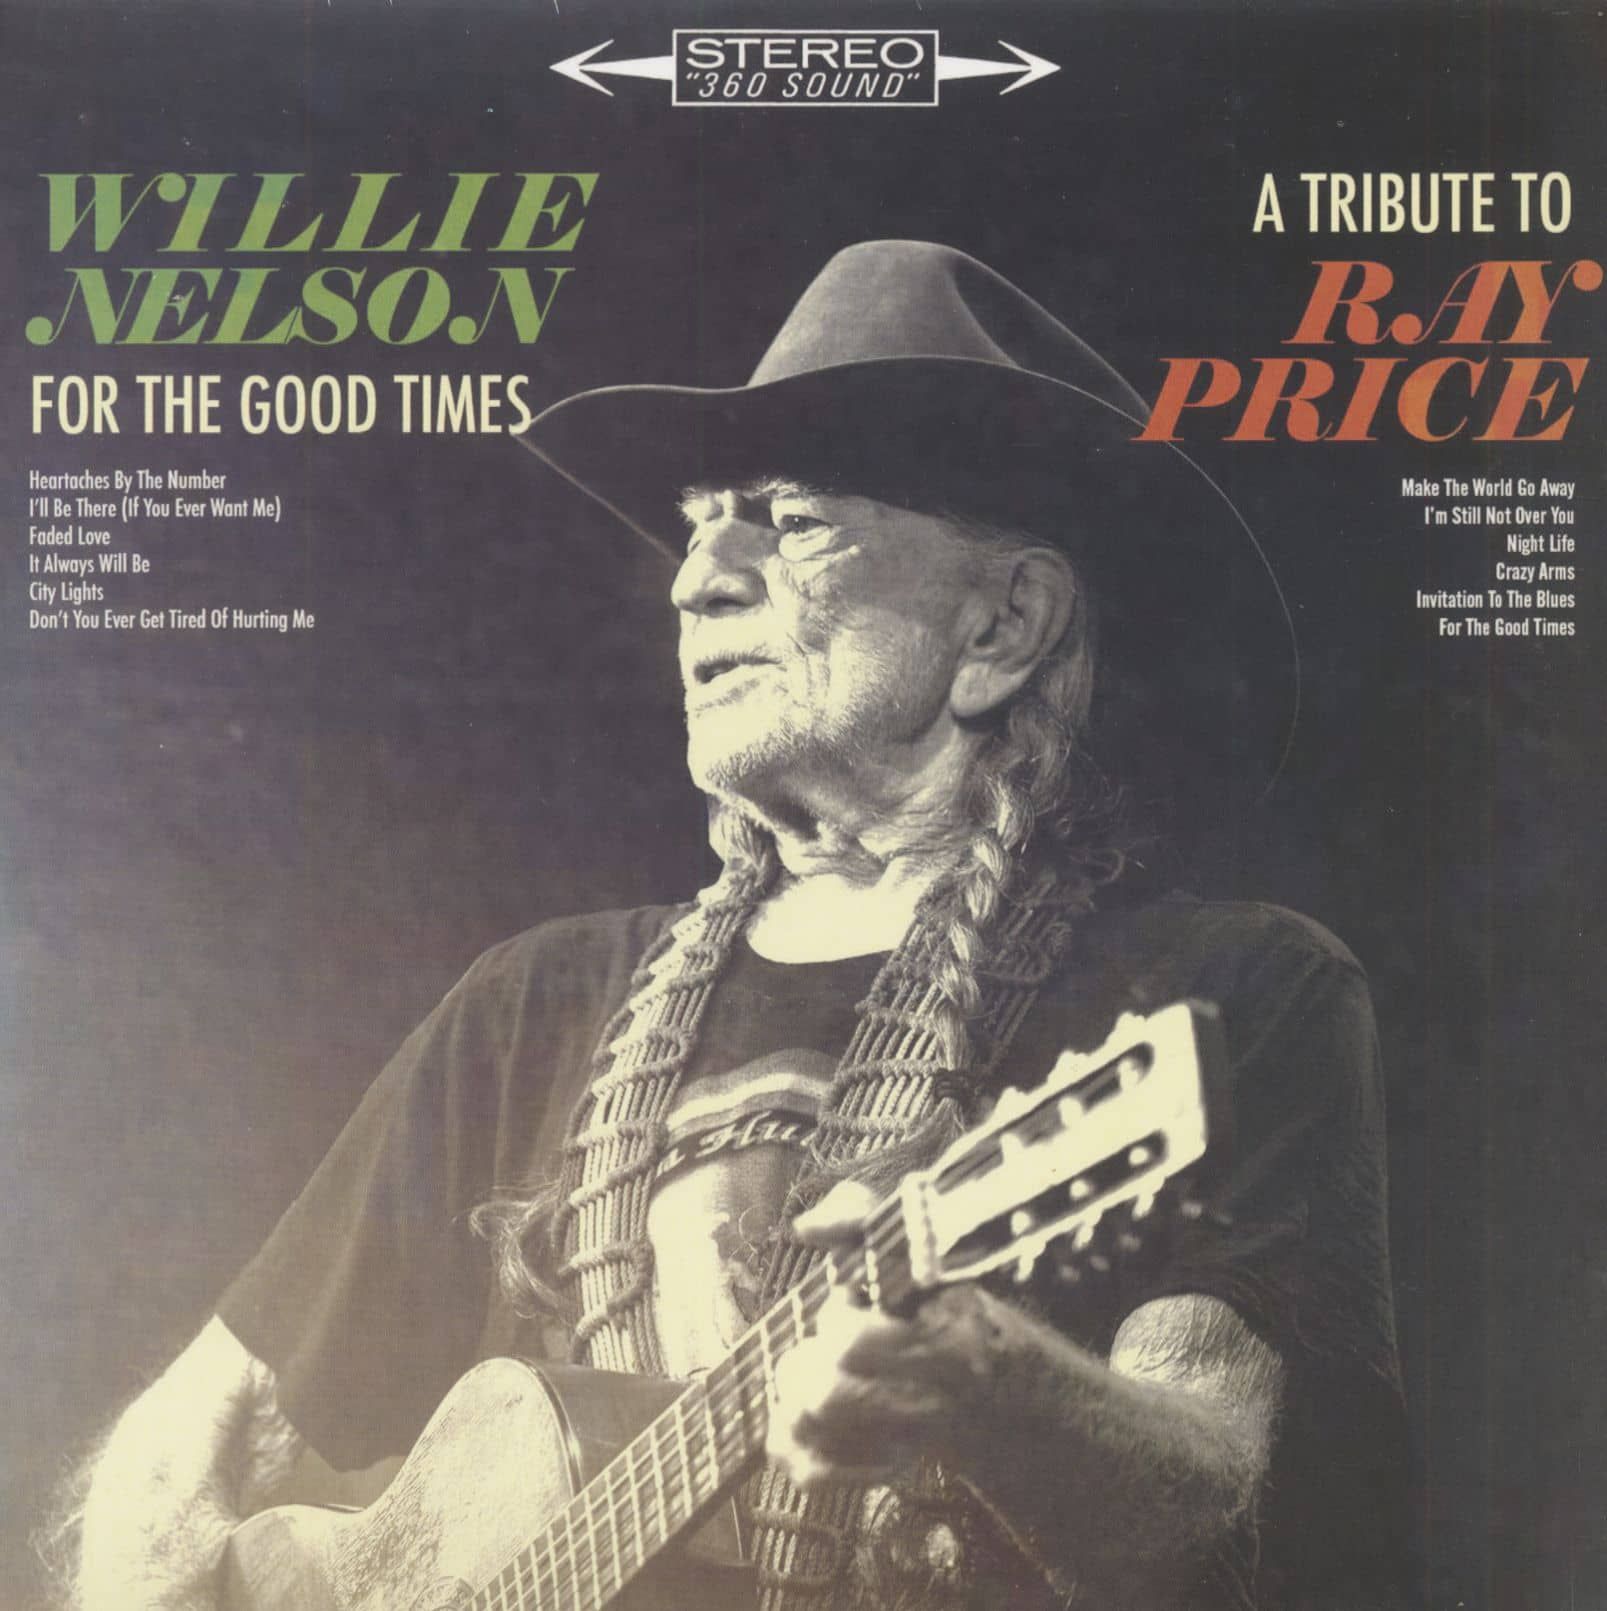 Willie Nelson Lp For The Good Times A Tribute To Ray